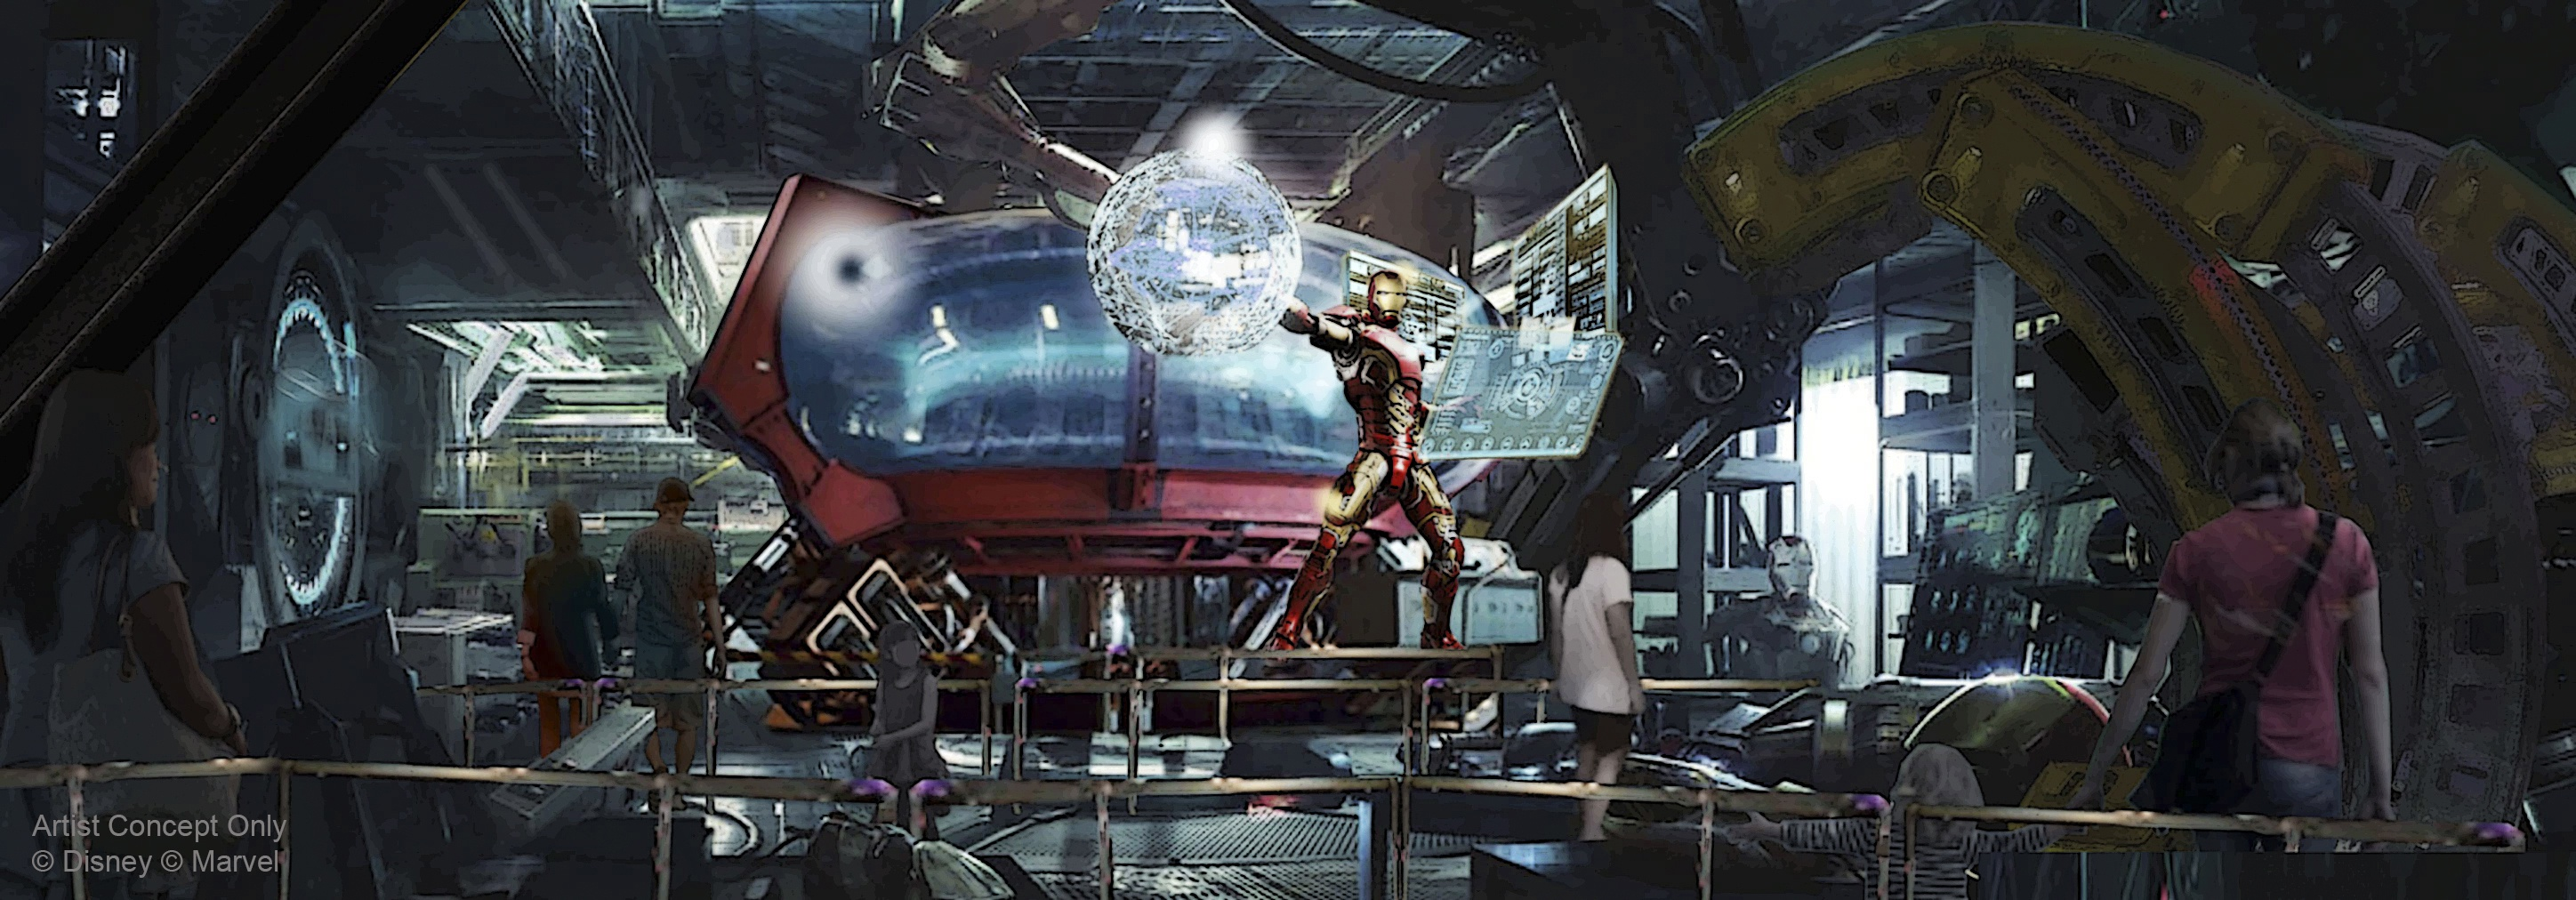 Disneyland Paris Announce Marvel Roller Coaster for Walt Disney Studios - Is This Good News?